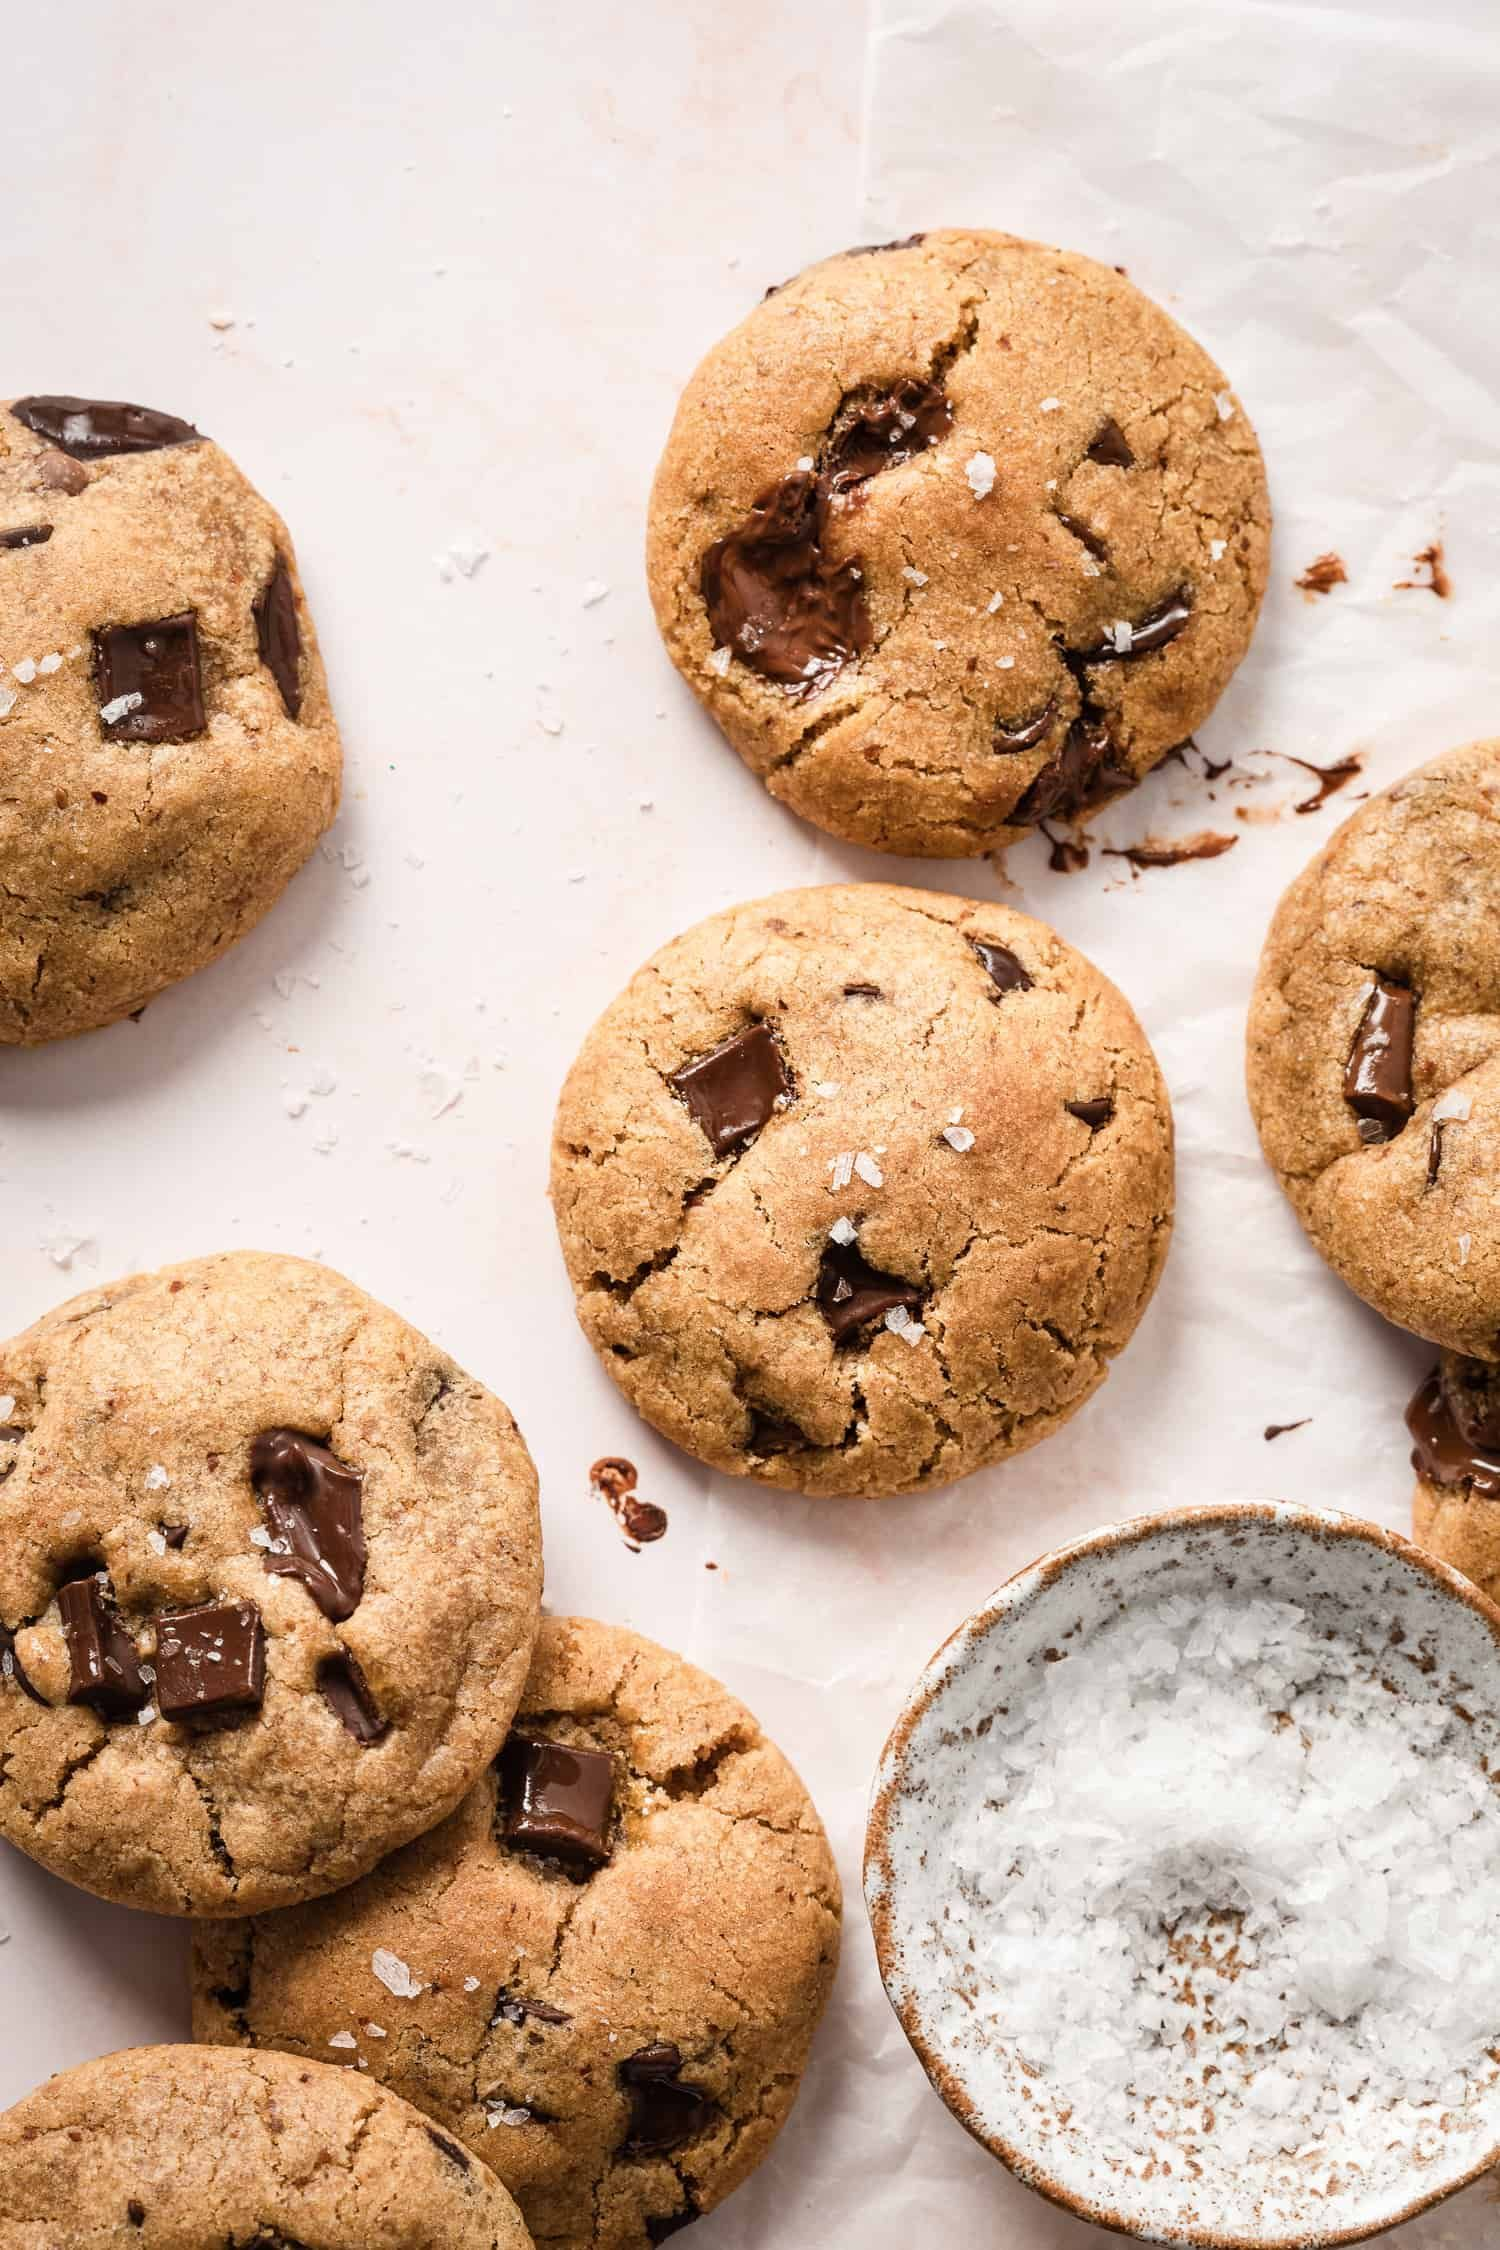 The Best Chewy Chocolate Chip Cookies Kalejunkie Recipe In 2020 Chewy Chocolate Chip Cookies Chewy Chocolate Chip Chocolate Fudge Crinkle Cookies